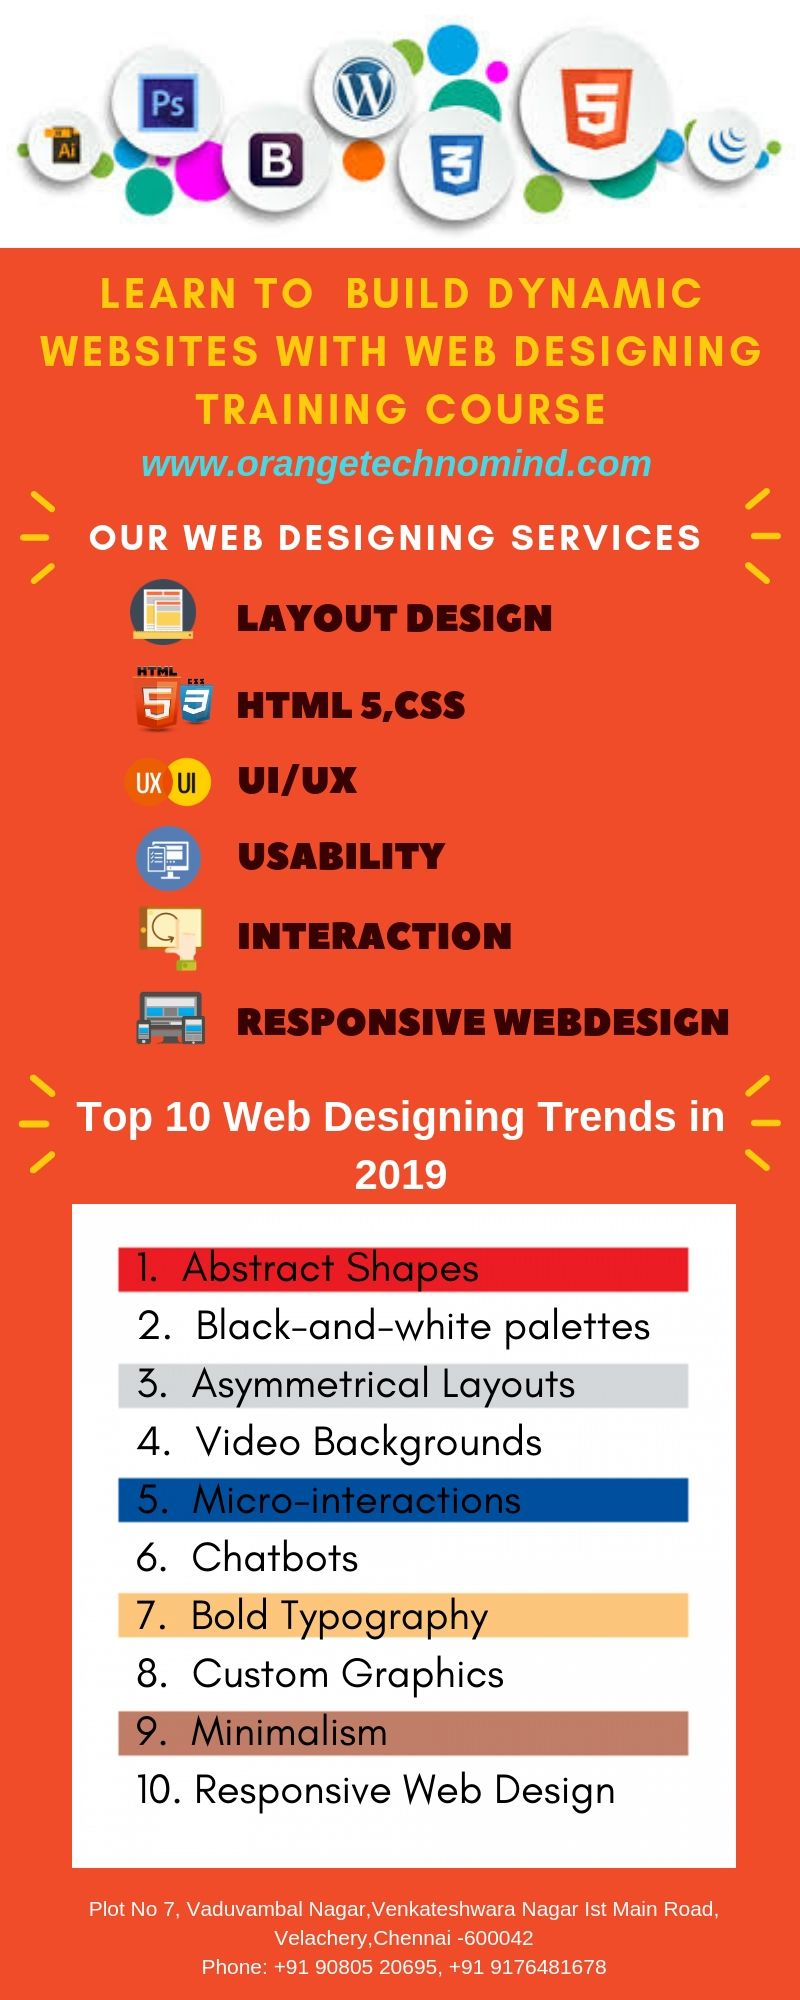 Our Web Designing Course Syllabus And Hands On Are Industrial Standard We Are The Best Web Designing Training Web Design Training Web Design Course Web Design